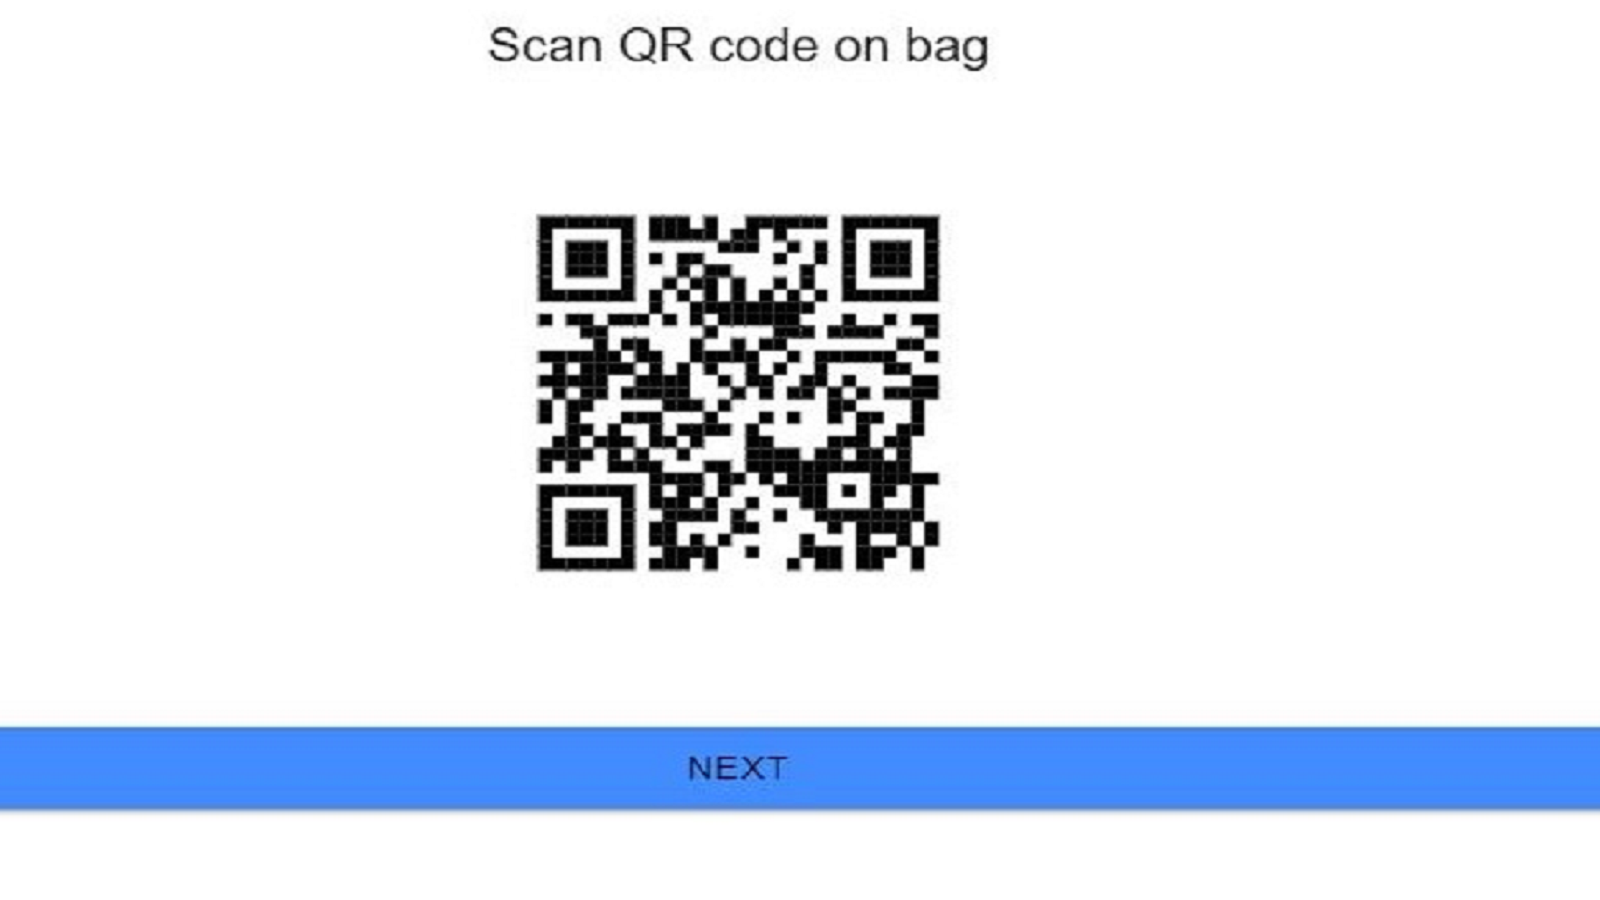 identify locations and orders with QR or barcodes